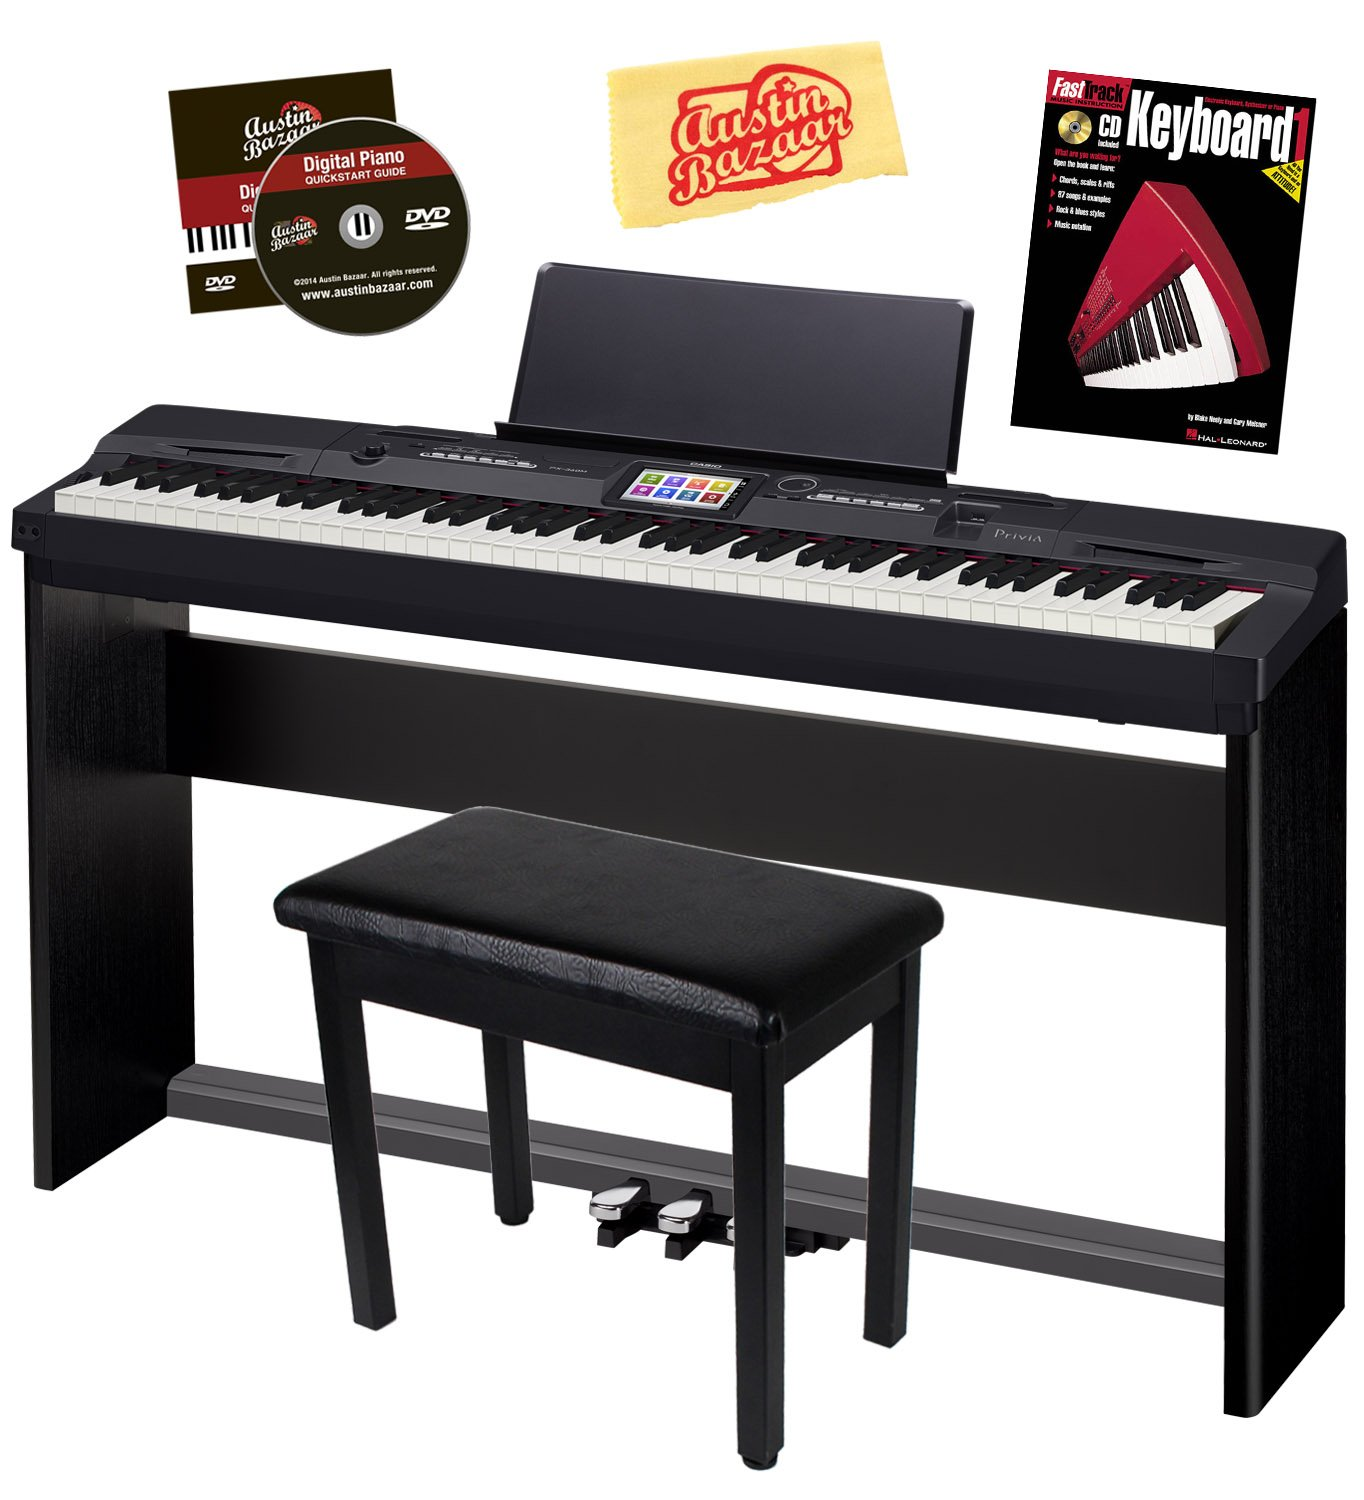 Casio Privia PX-360 Digital Piano - Black Bundle with CS-67 Stand, SP-33 Pedal, Furniture Bench, Instructional Book, Austin Bazaar Instructional DVD, and Polishing Cloth by Casio